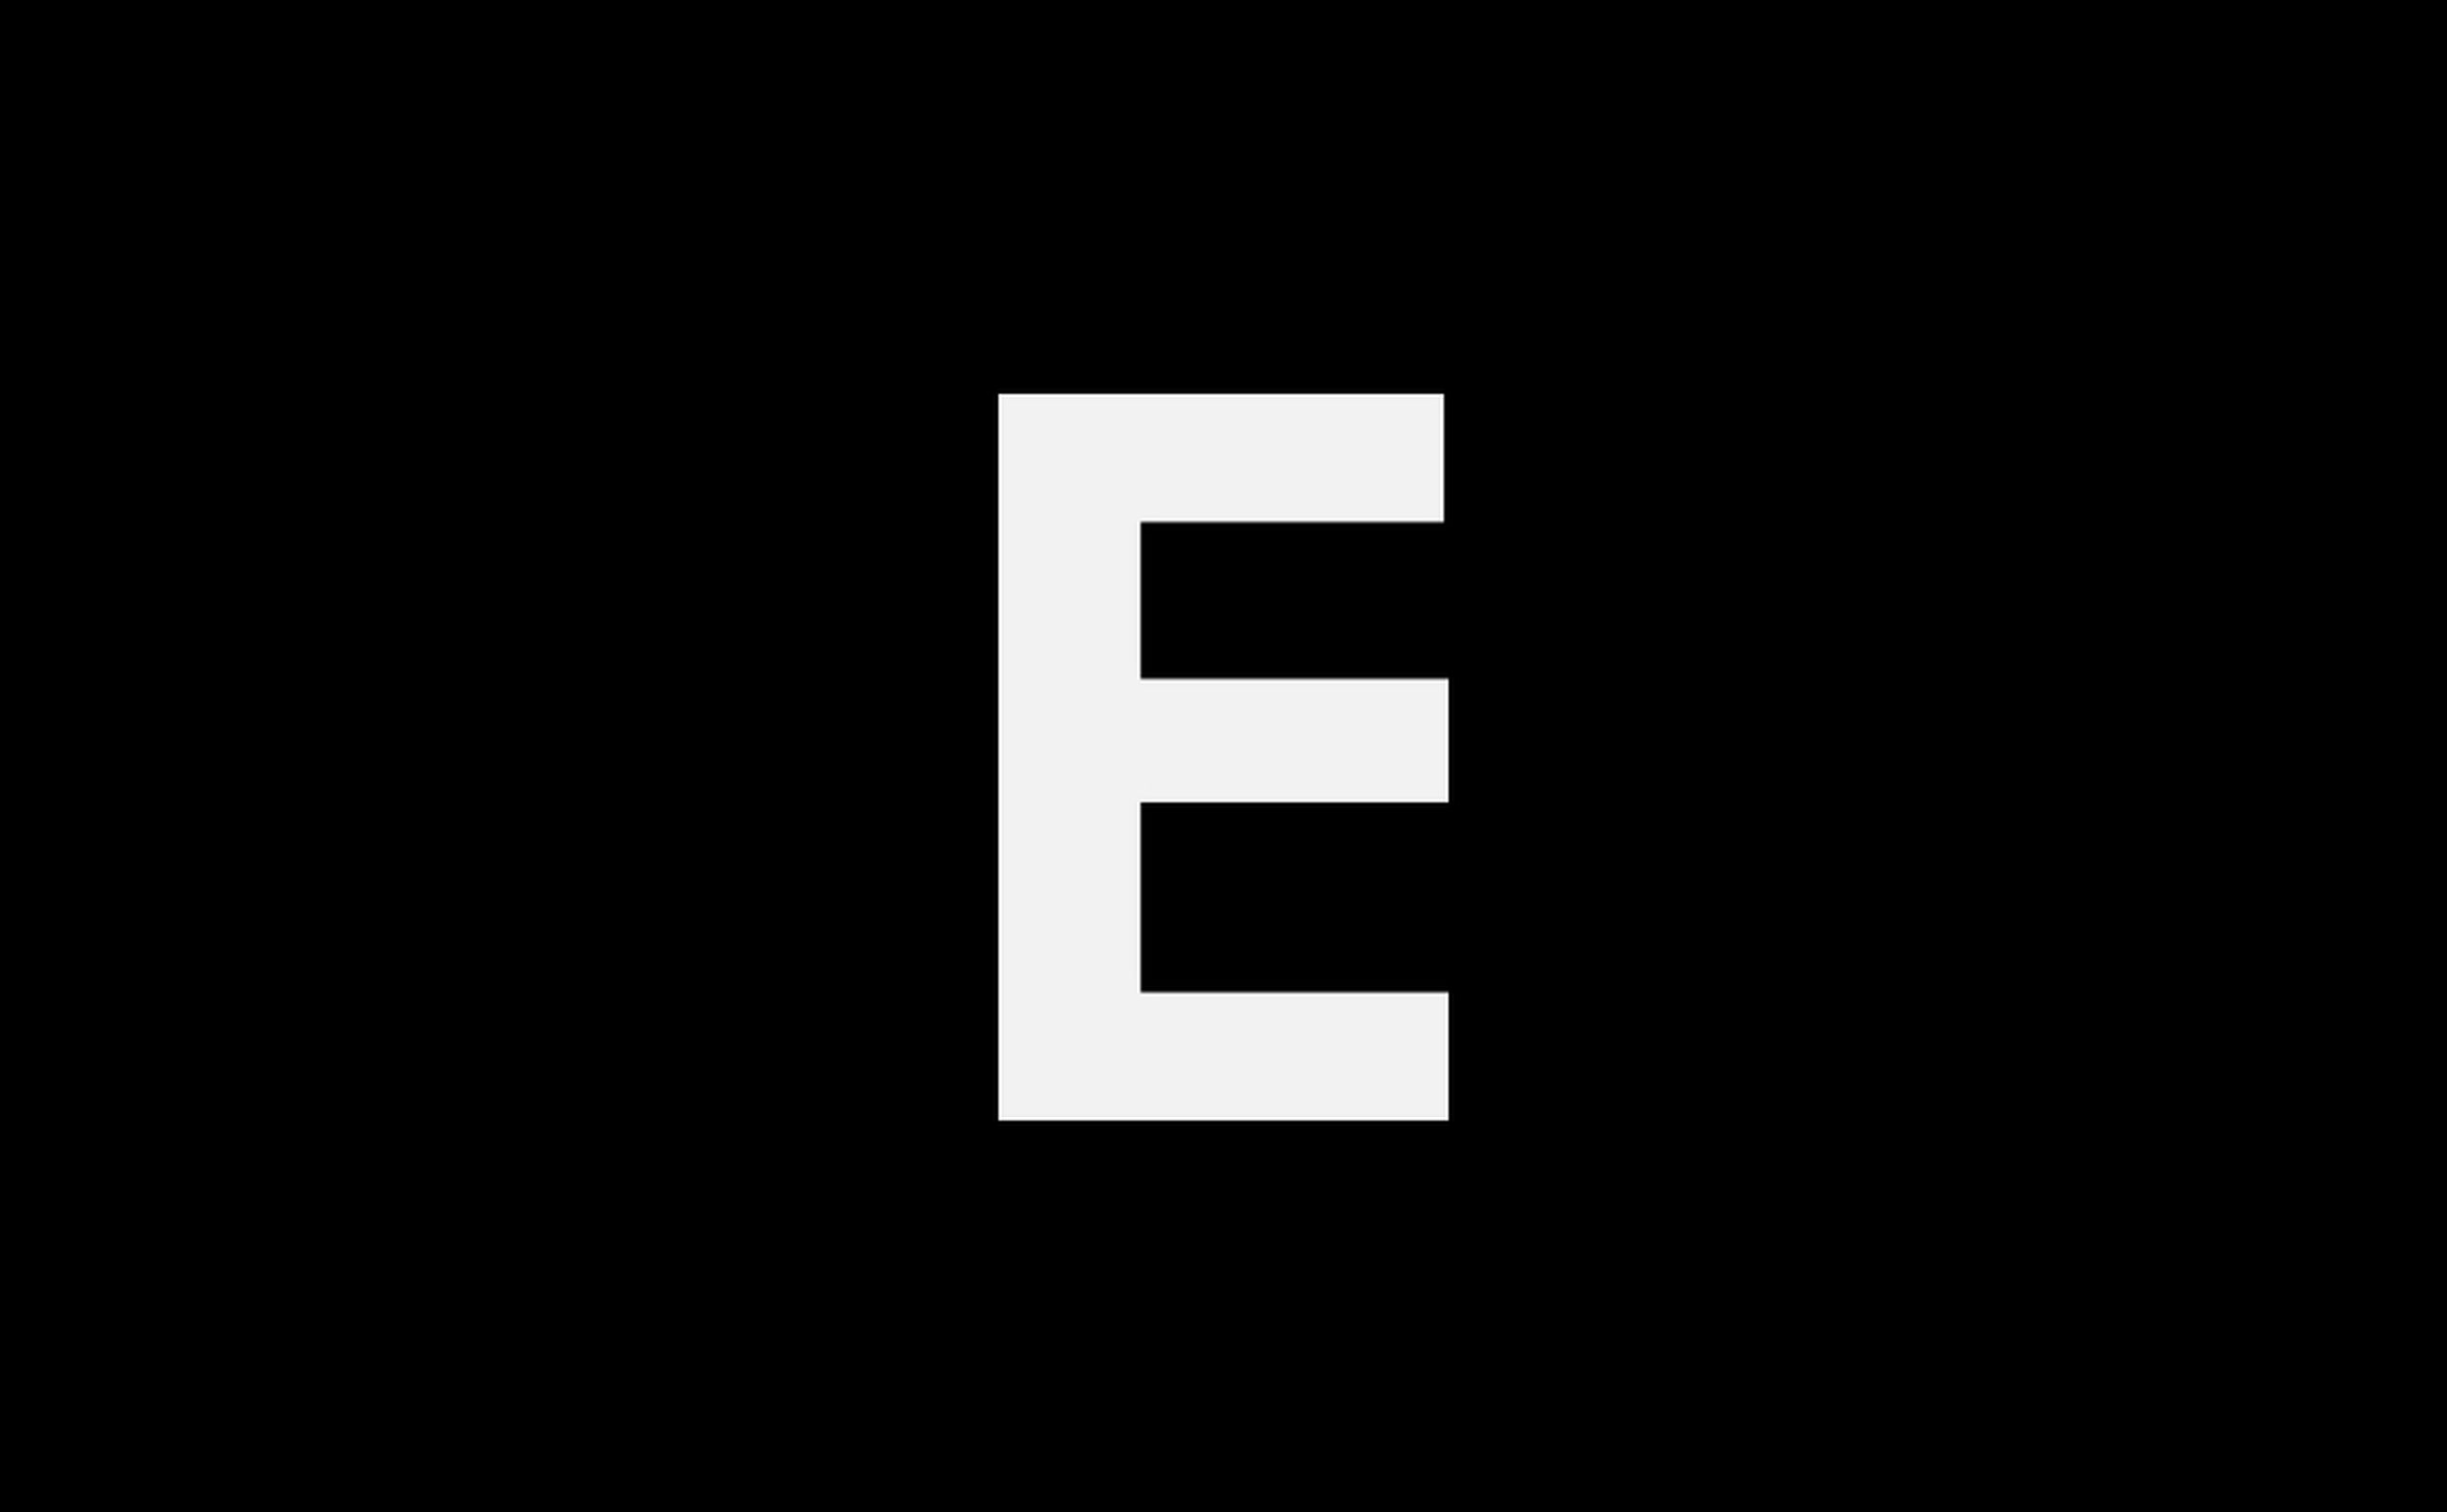 portrait, one person, headshot, black and white, human face, young adult, adult, women, black, indoors, portrait photography, close-up, monochrome photography, monochrome, looking, white, human hair, person, looking away, contemplation, hairstyle, human eye, human head, emotion, lifestyles, focus on foreground, serious, photo shoot, front view, female